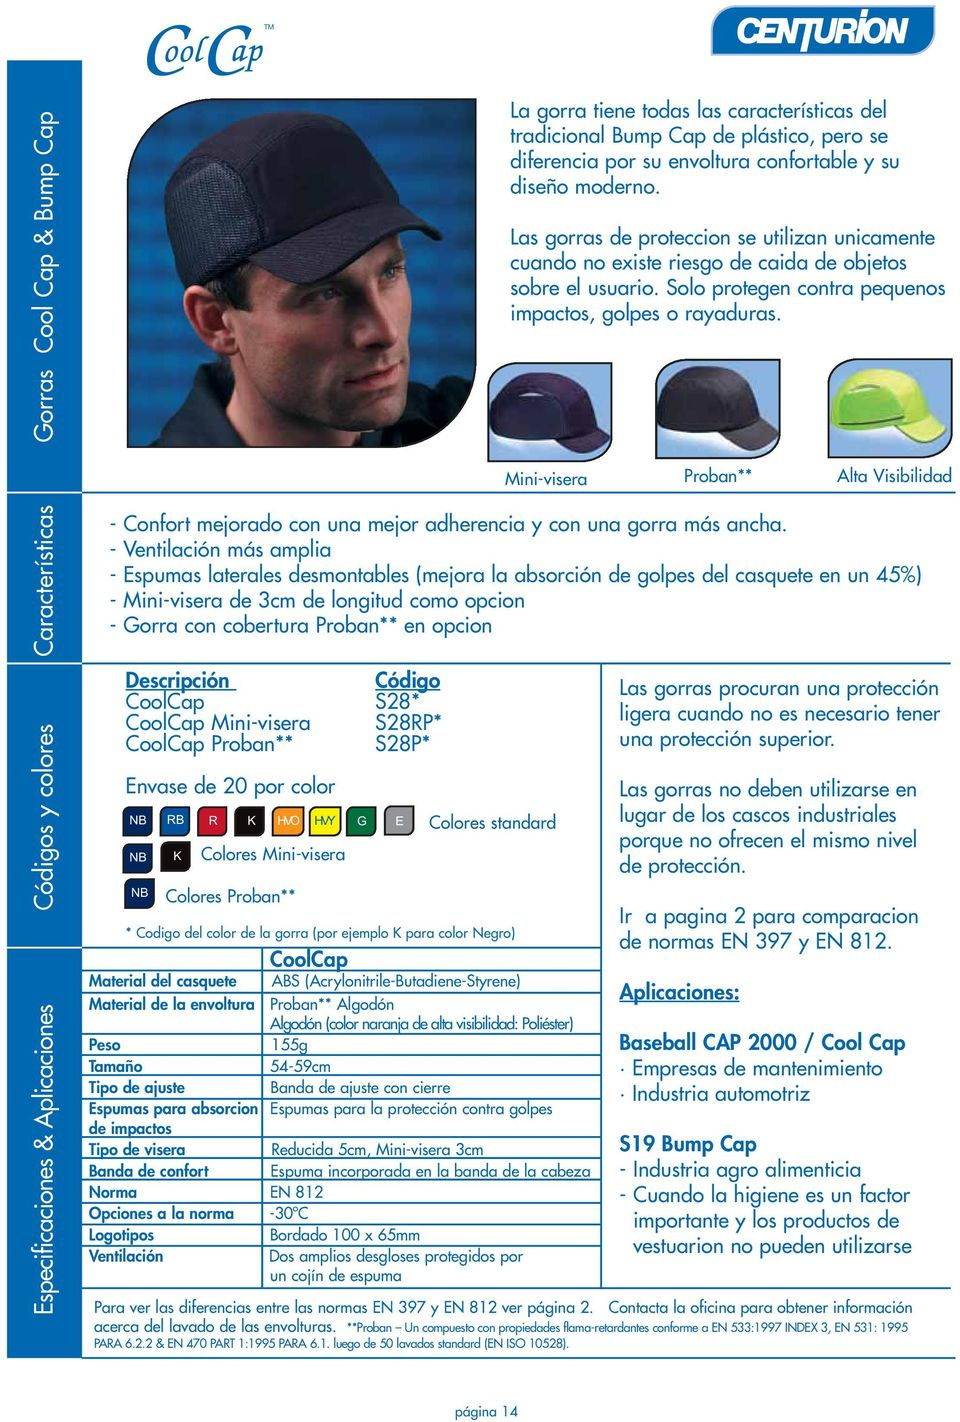 Código CoolCap S28* CoolCap Mini-visera S28RP* CoolCap Proban** S28P* Envase de 20 por color NB NB NB RB R K K Colores Mini-visera Colores Proban** HVO HVY G E Colores standard * Codigo del color de